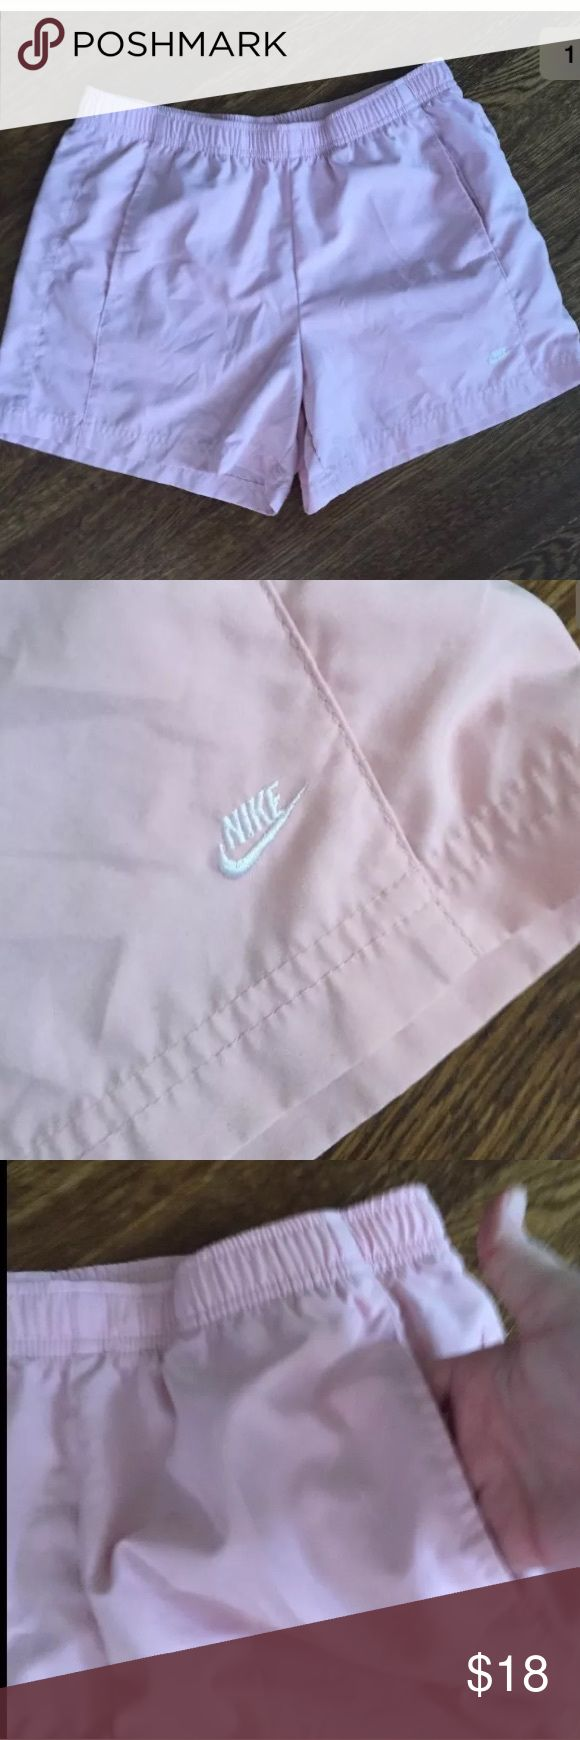 Vintage Pink Nike Running Shorts Size Small Nike brand pink workout shorts with pockets in a ladies size small. Shorts have been kept smoke free and are in excellent condition.  We love to bundle and combine shipping so shoot us offers! Nike Shorts